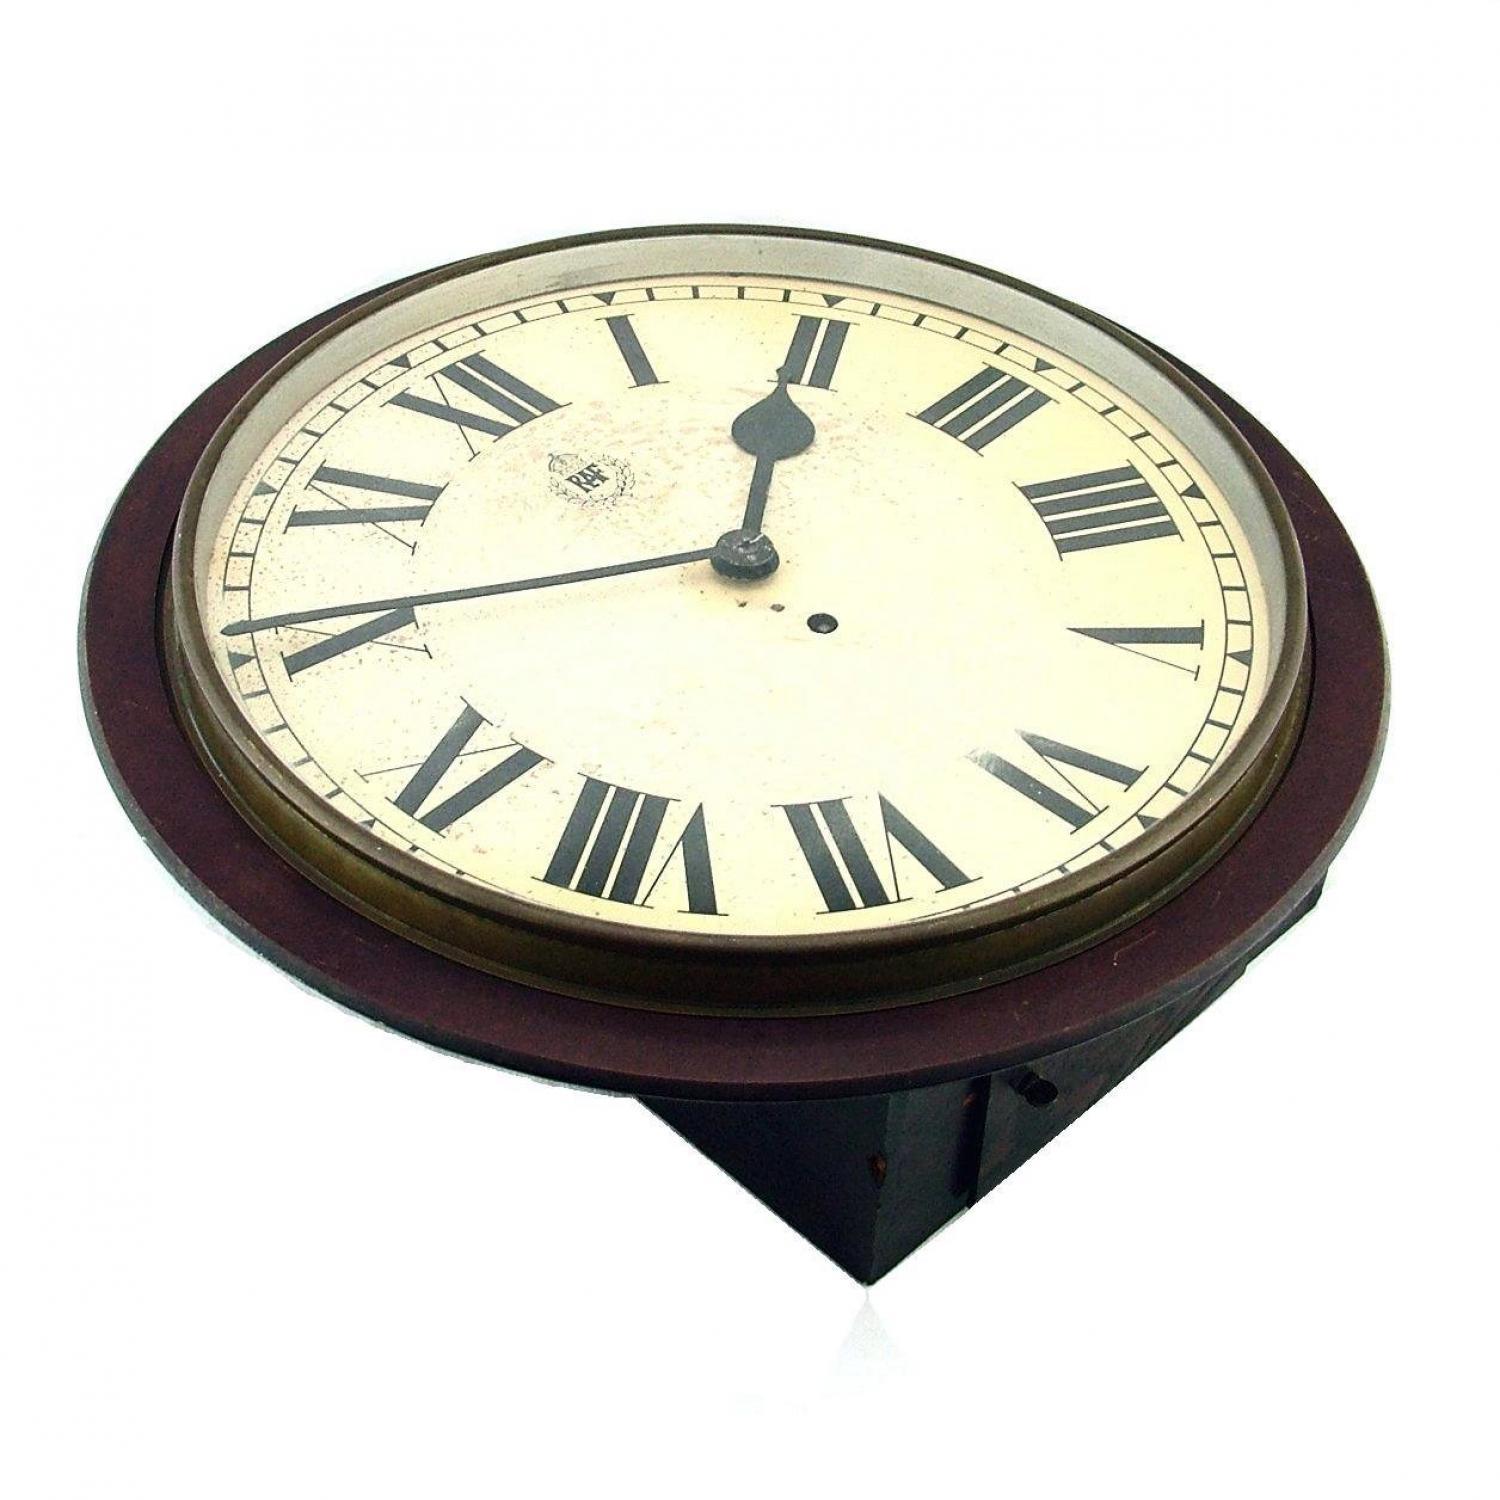 Raf wall clock 12000 wall clocks raf station wall clock picture 13 amipublicfo Images